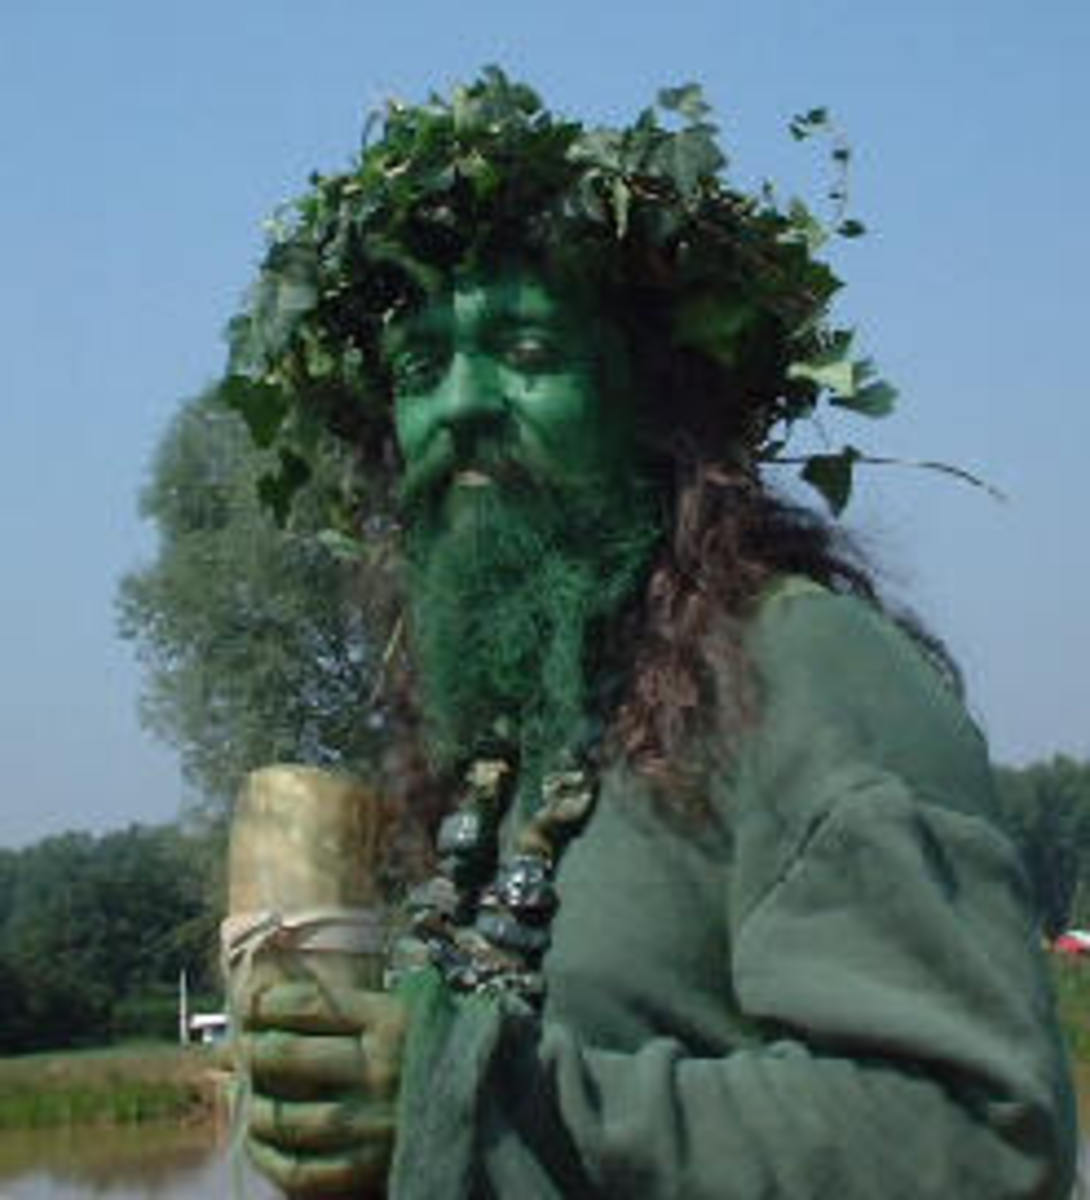 the-green-man-festival-who-is-this-green-man-pagan-druid-celtic-or-just-ancient